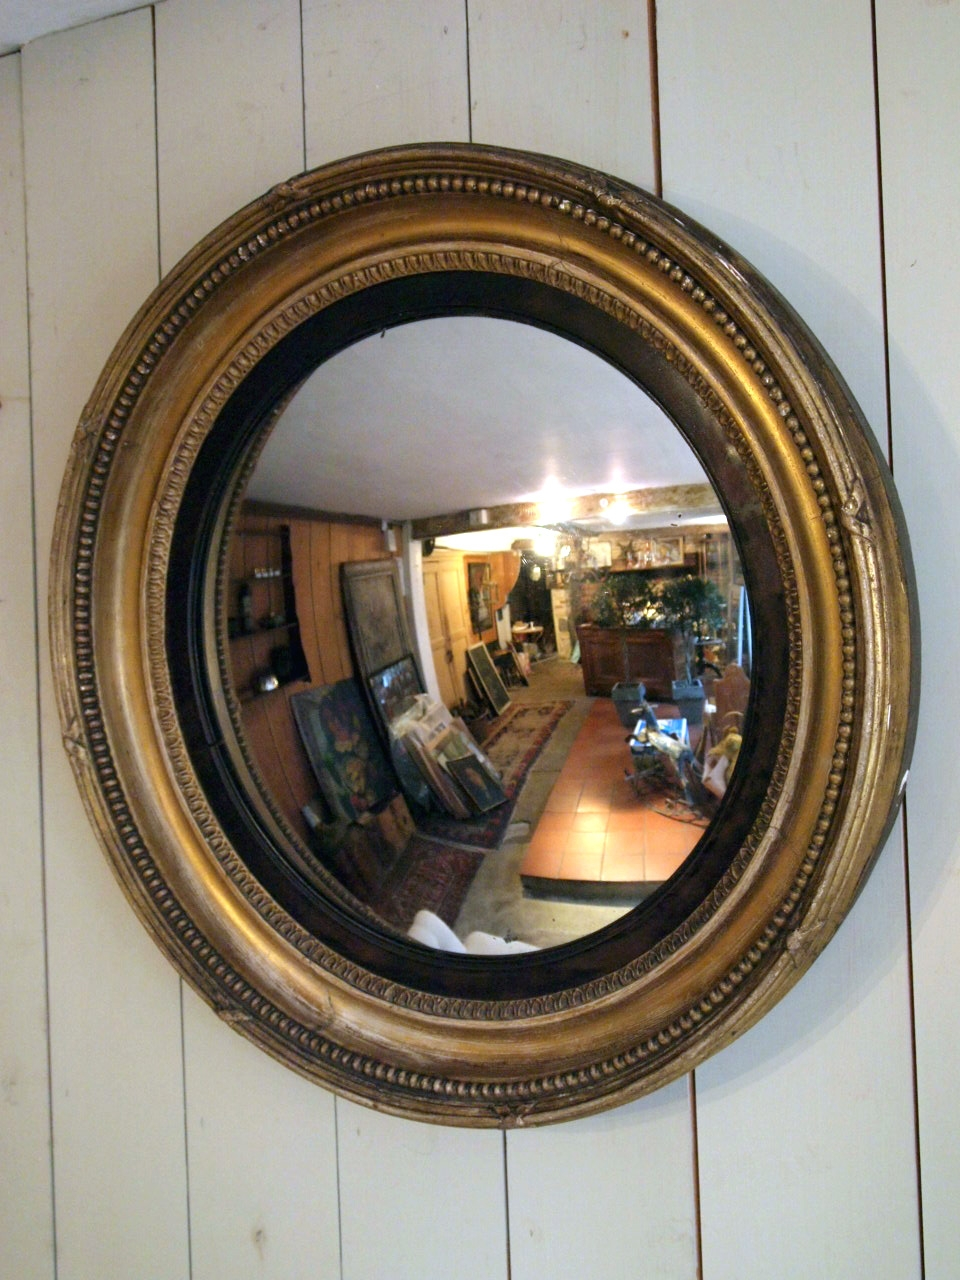 Antique Round Convex Mirror Puckhaber Decorative Antiques Regarding Convex Decorative Mirror (Image 2 of 15)